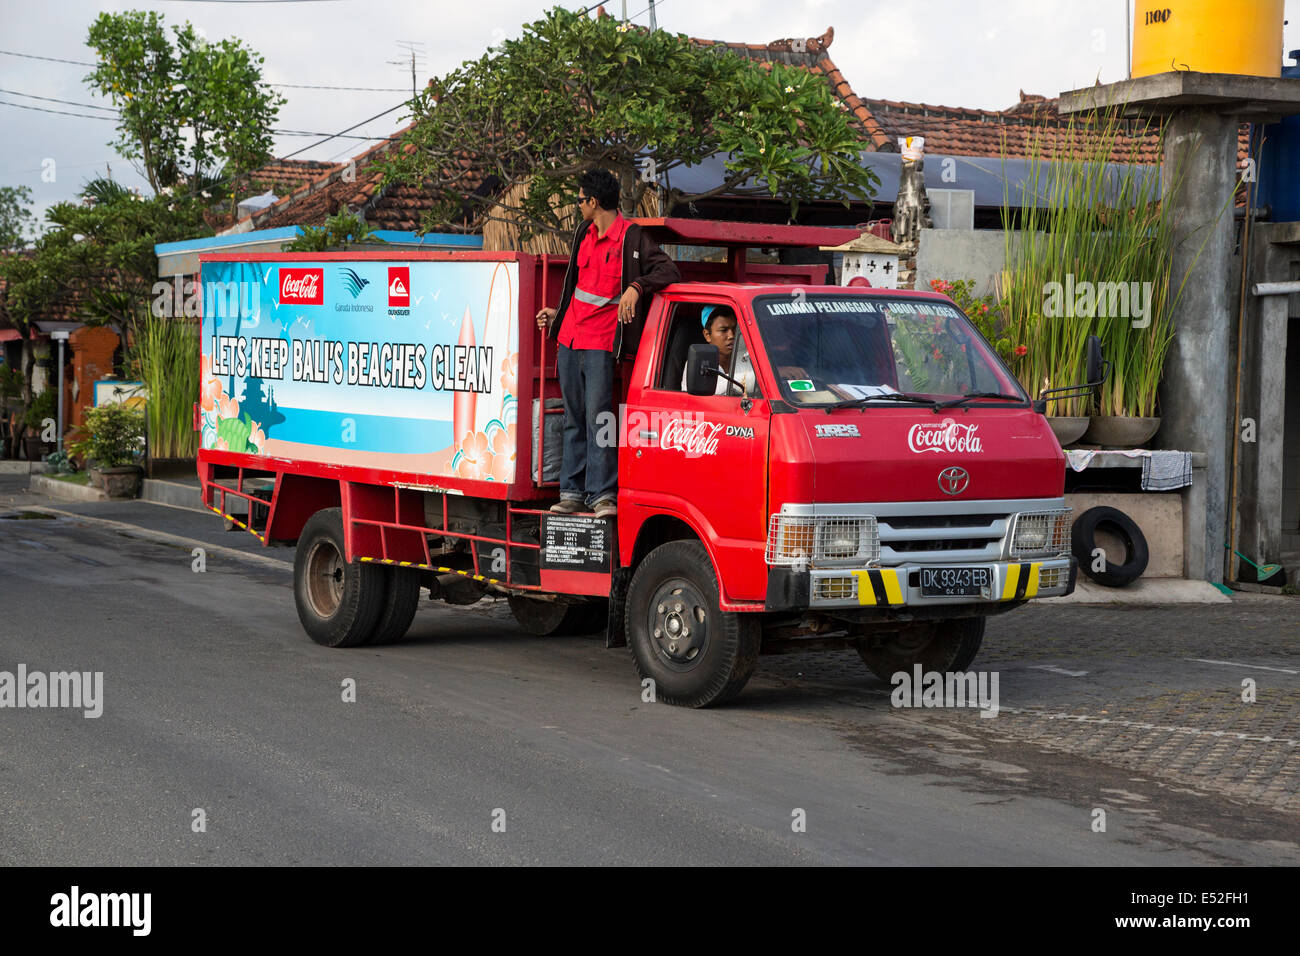 Bali, Indonesia.  Public Cleanliness Campaign: Keep Bali's Beaches Clean. - Stock Image